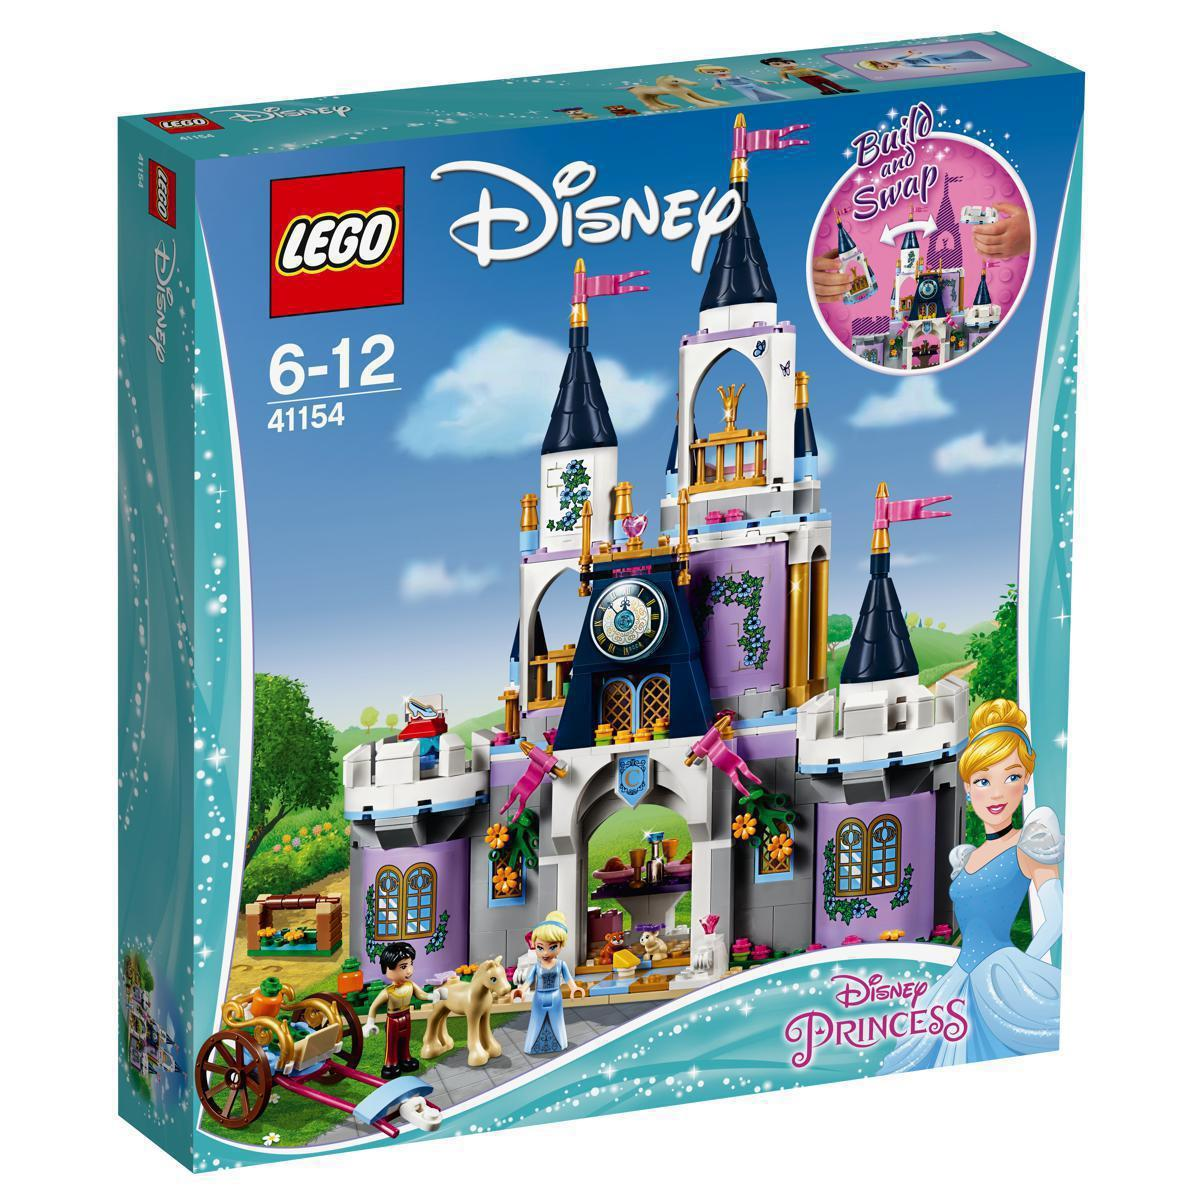 Lego Disney Princess Cinderella's Dream Castle (41154)